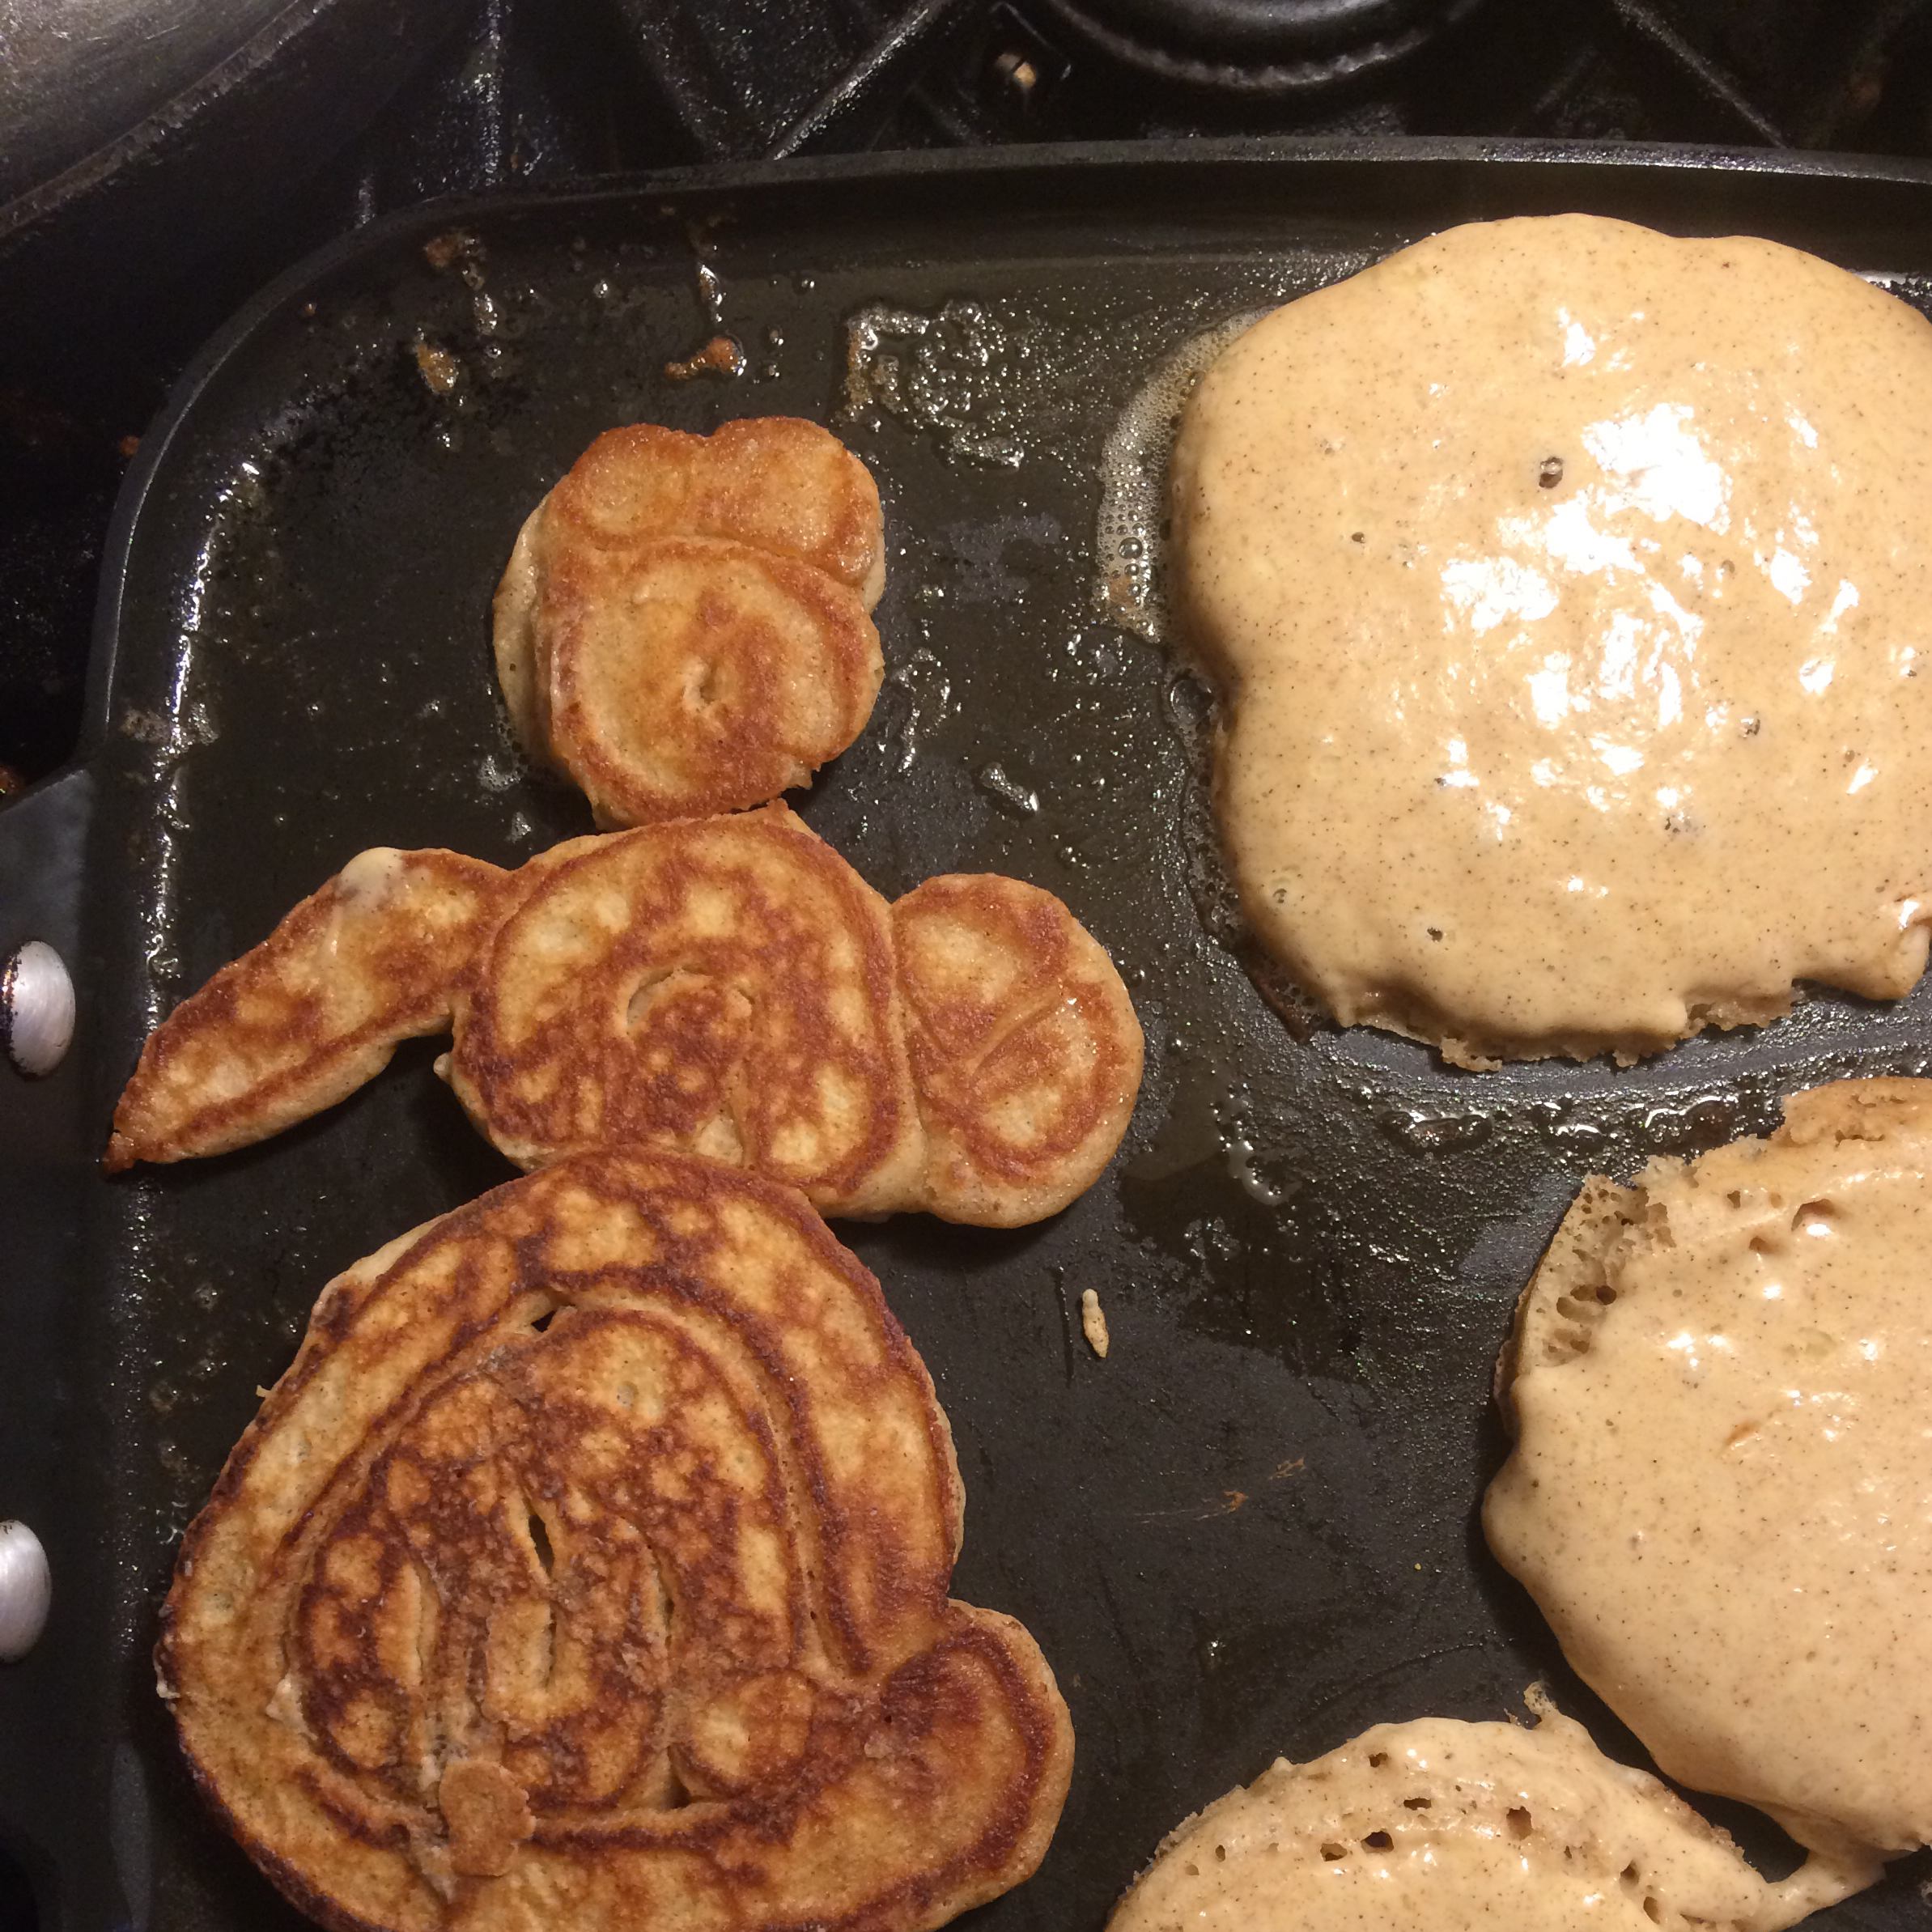 Cinnamon Griddle Cakes ding dong